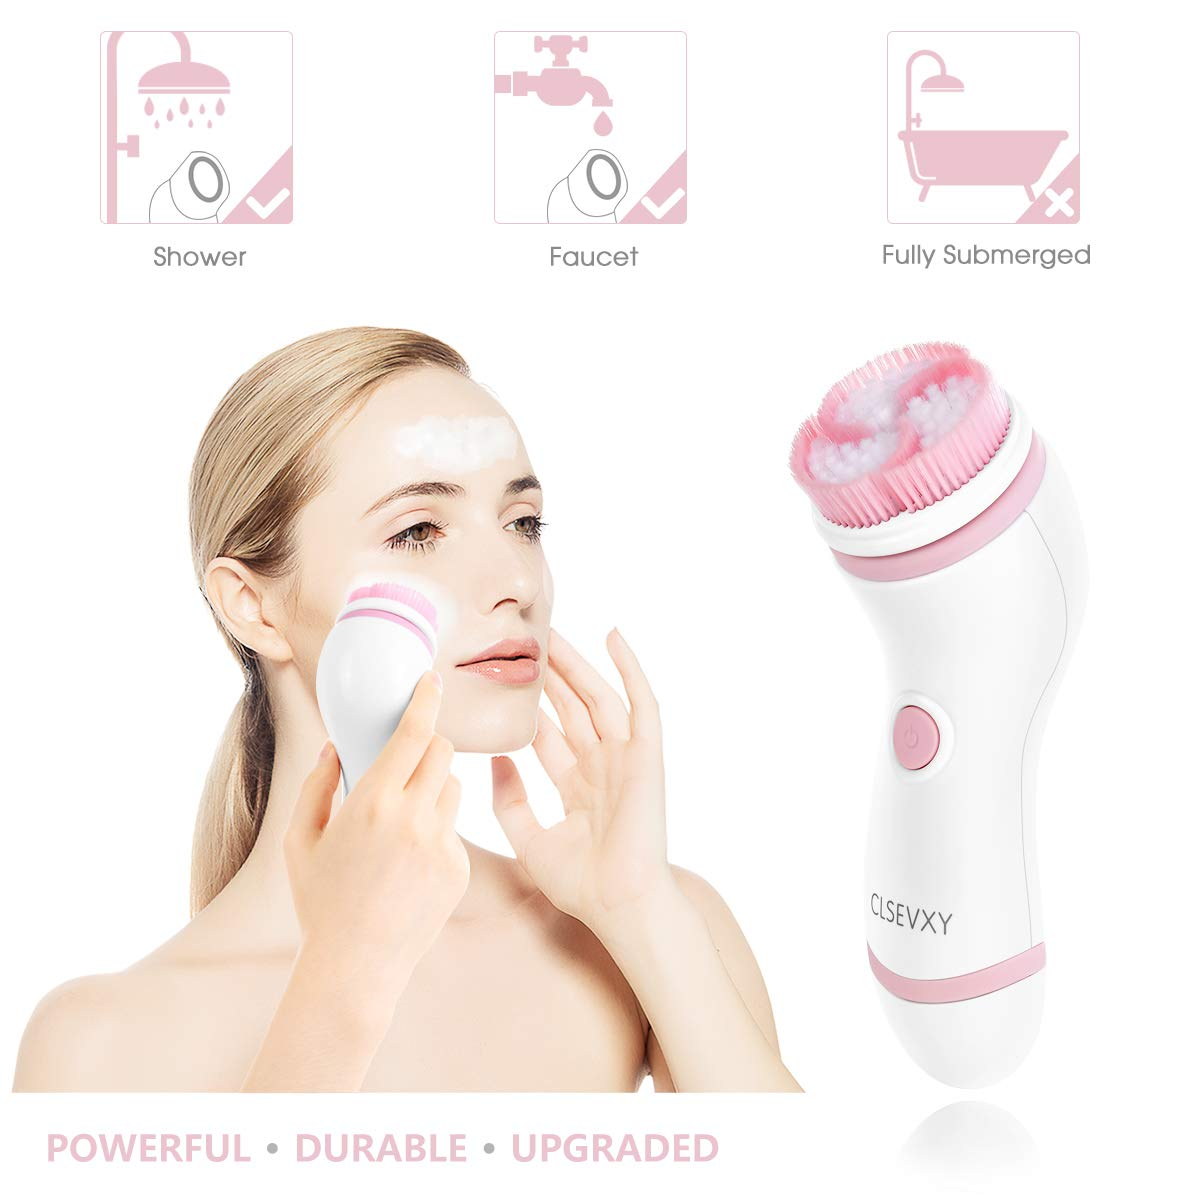 Waterproof Facial Cleansing Brush Set with 4 Exfoliation Brush Heads - Pink